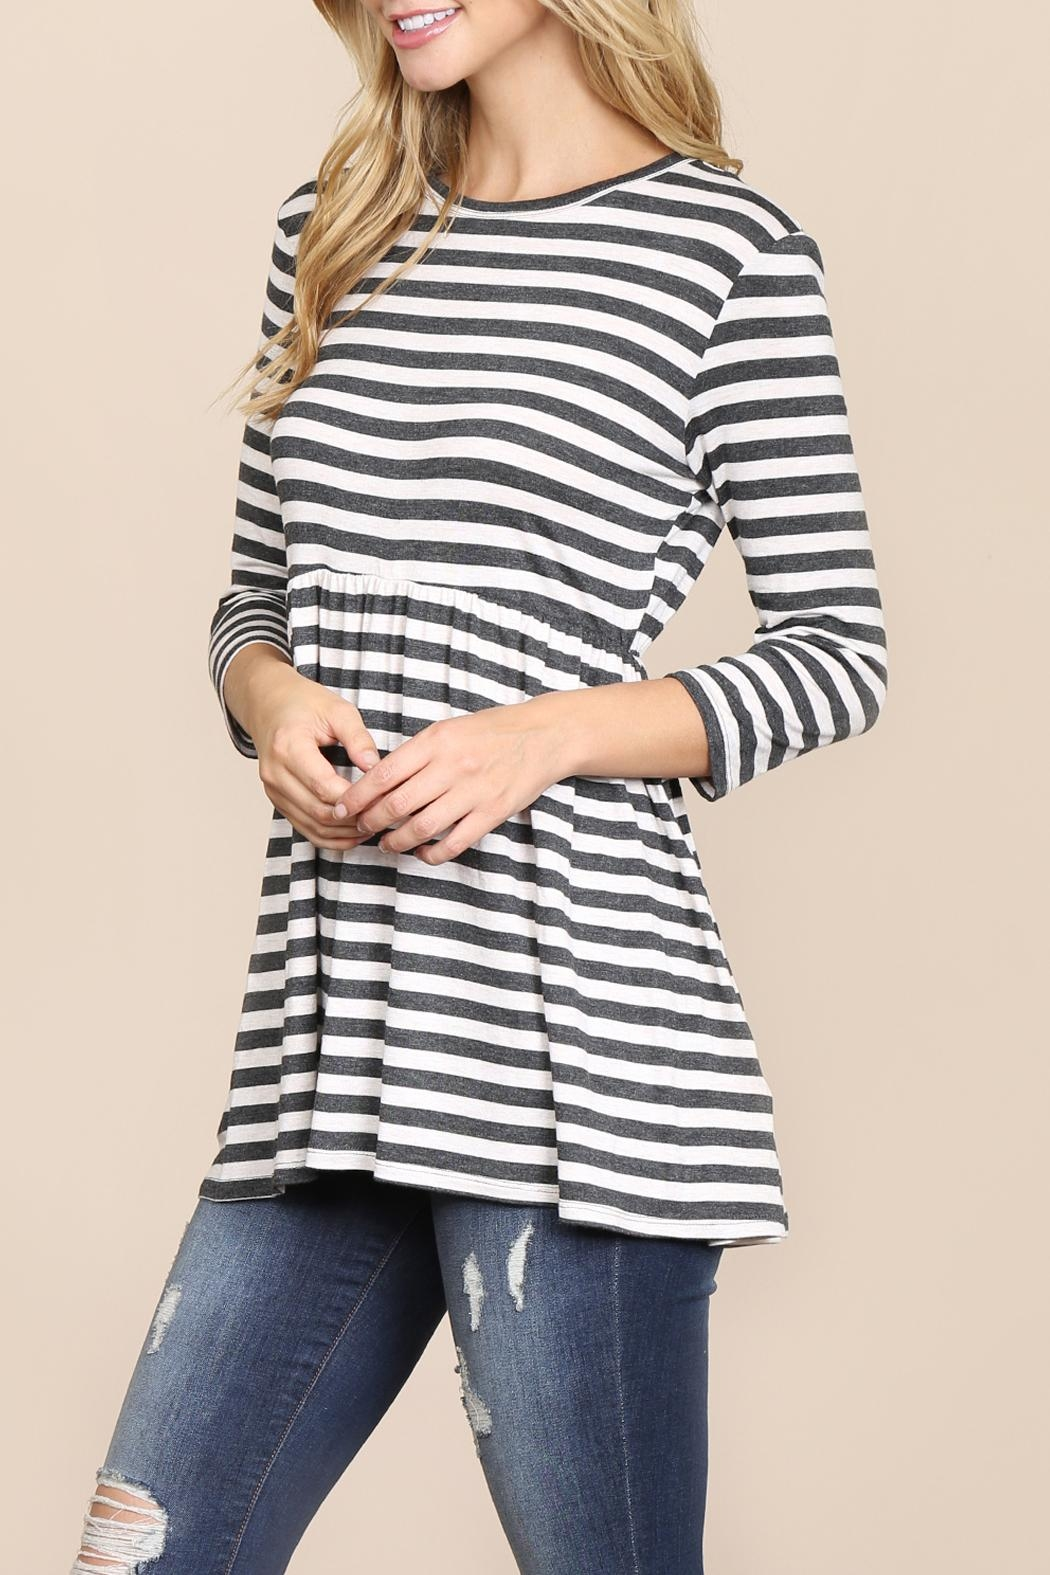 Riah Fashion Everyday-Half-Inch Striped-Tunic - Front Full Image